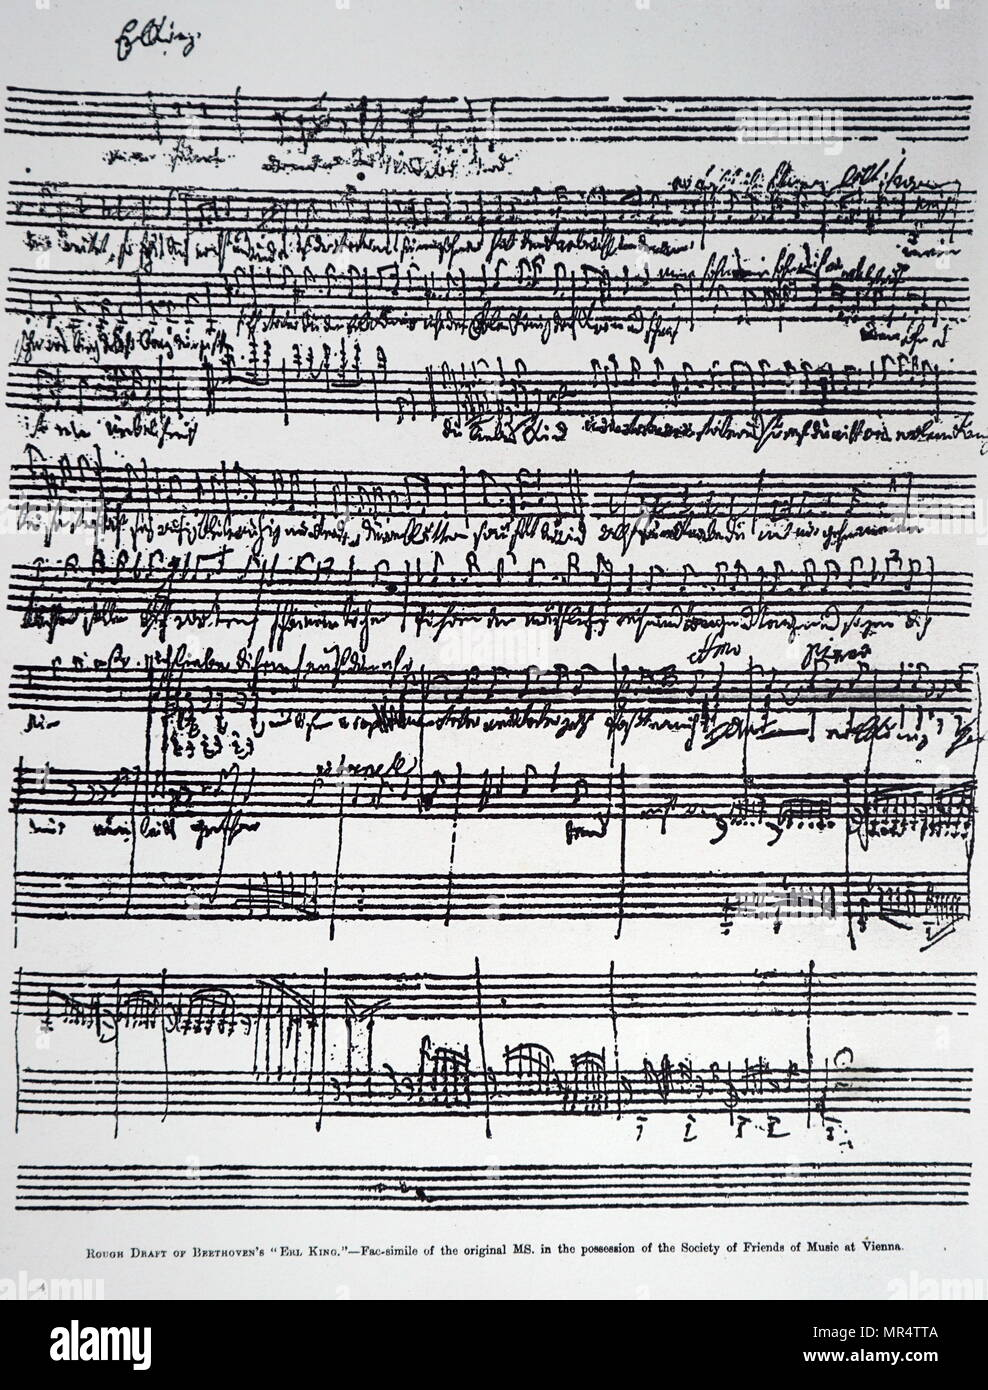 "Draft of Beethoven's ""Erlkönig"". Ludwig van Beethoven (1770-1827) a German composer and pianist. Dated 19th century Stock Photo"